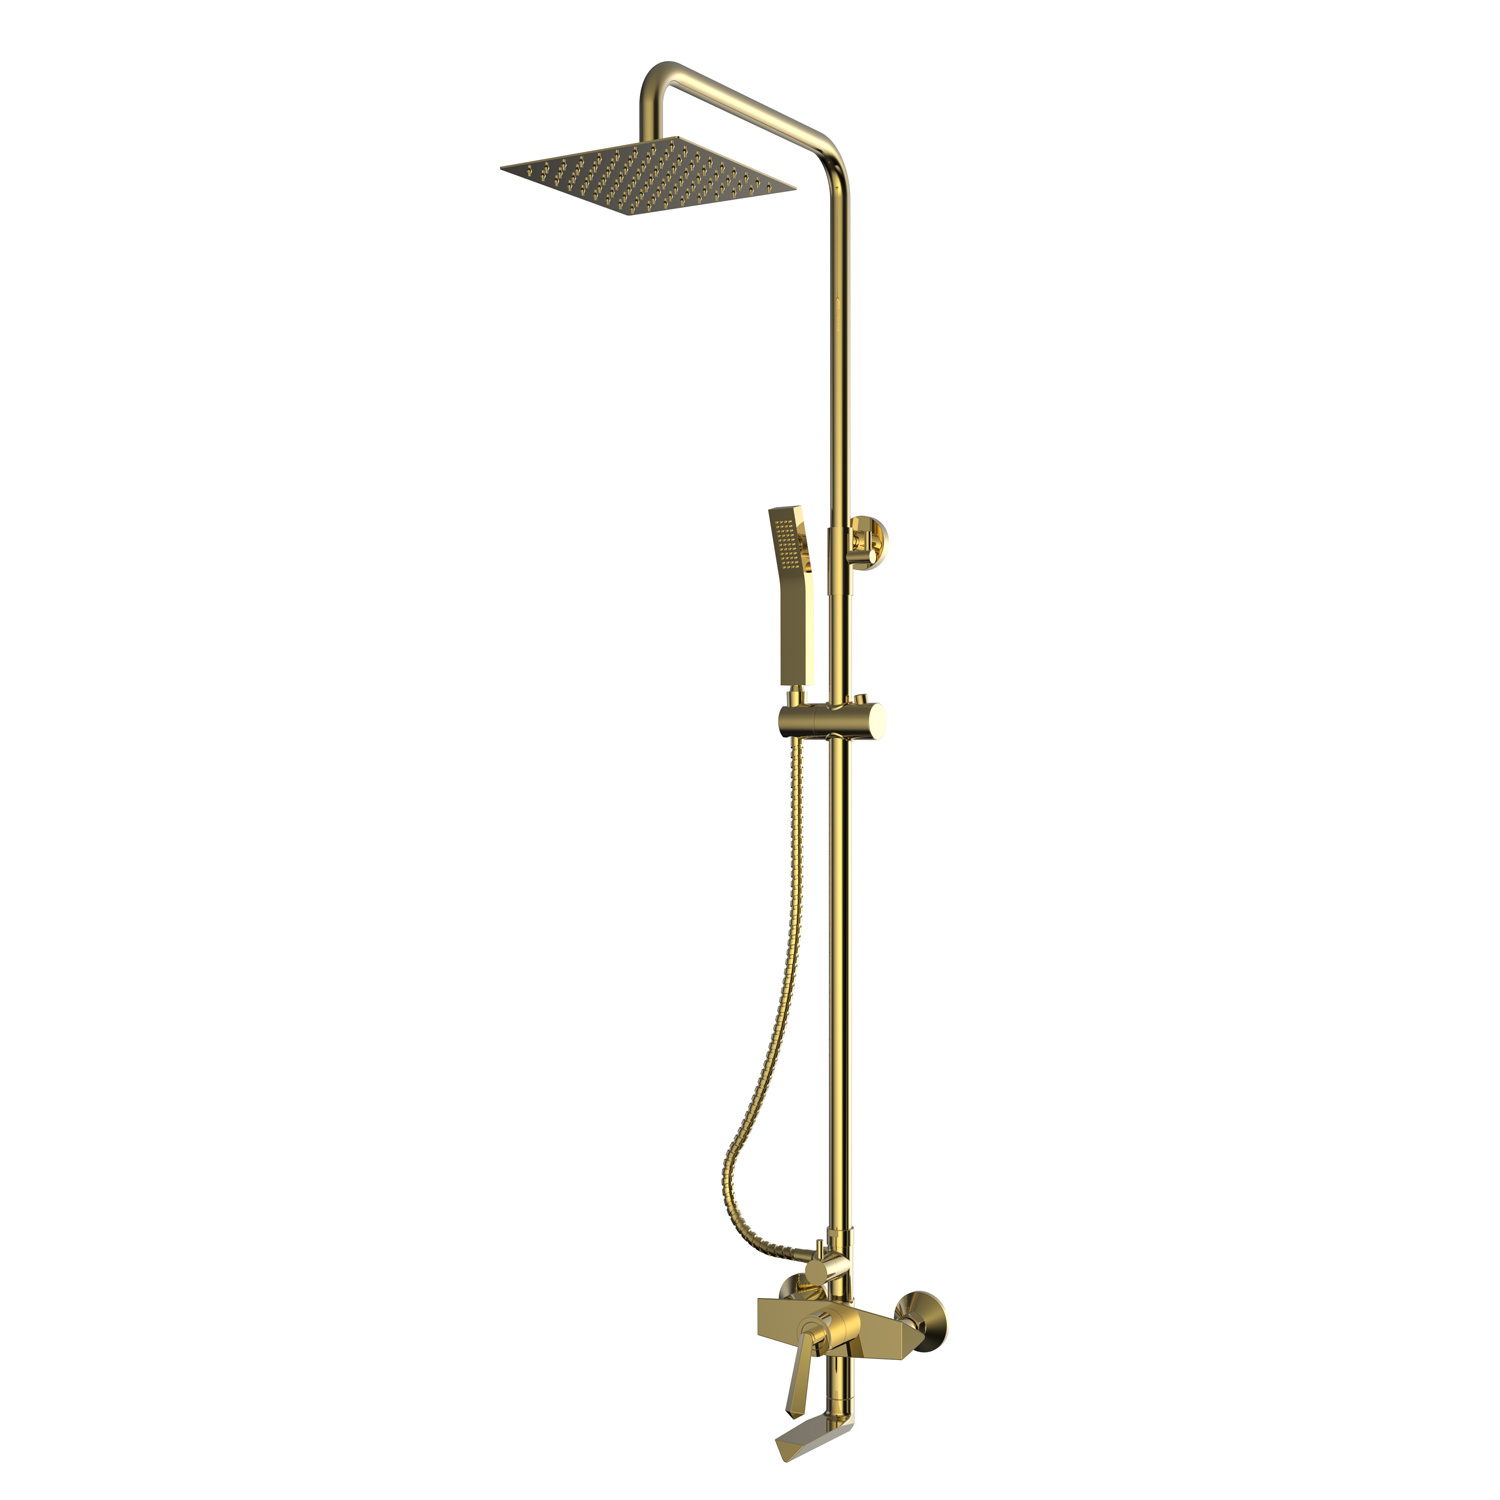 Hot Item Round Rose Gold Wall Mount Bathtub Mixet Faucet For Shower With Hose And Handheld Shower